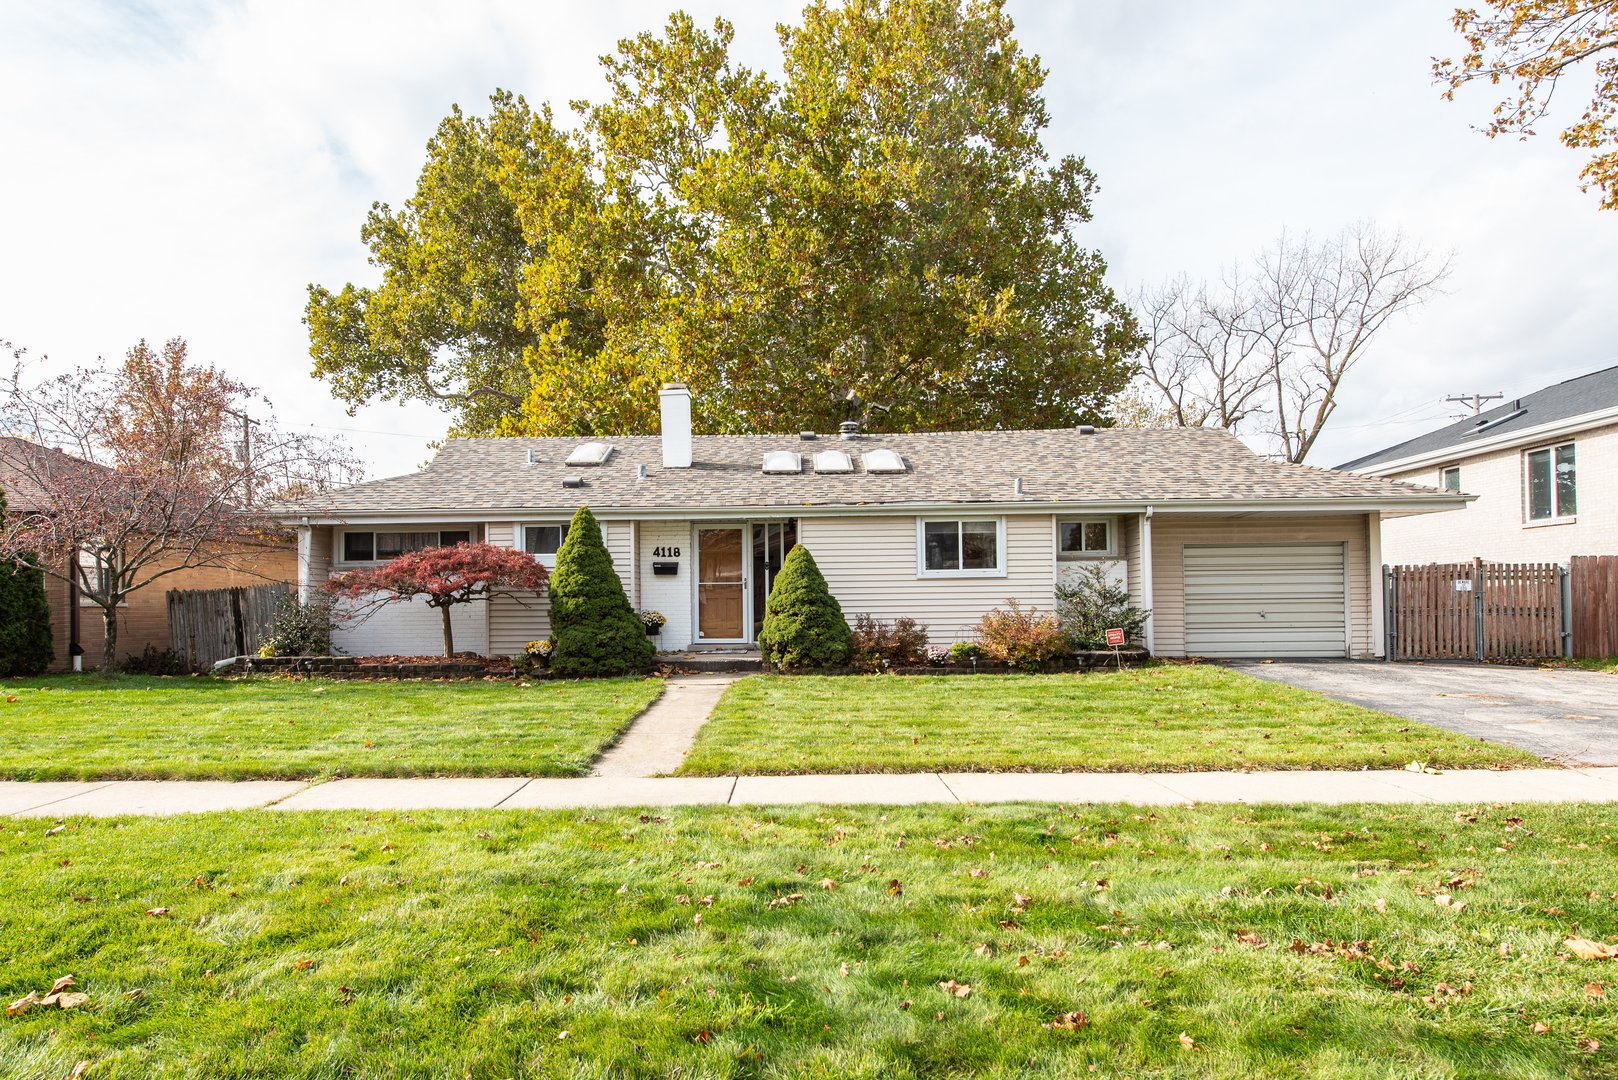 One of Brookfield 3 Bedroom Homes for Sale at 4118 Dubois Boulevard